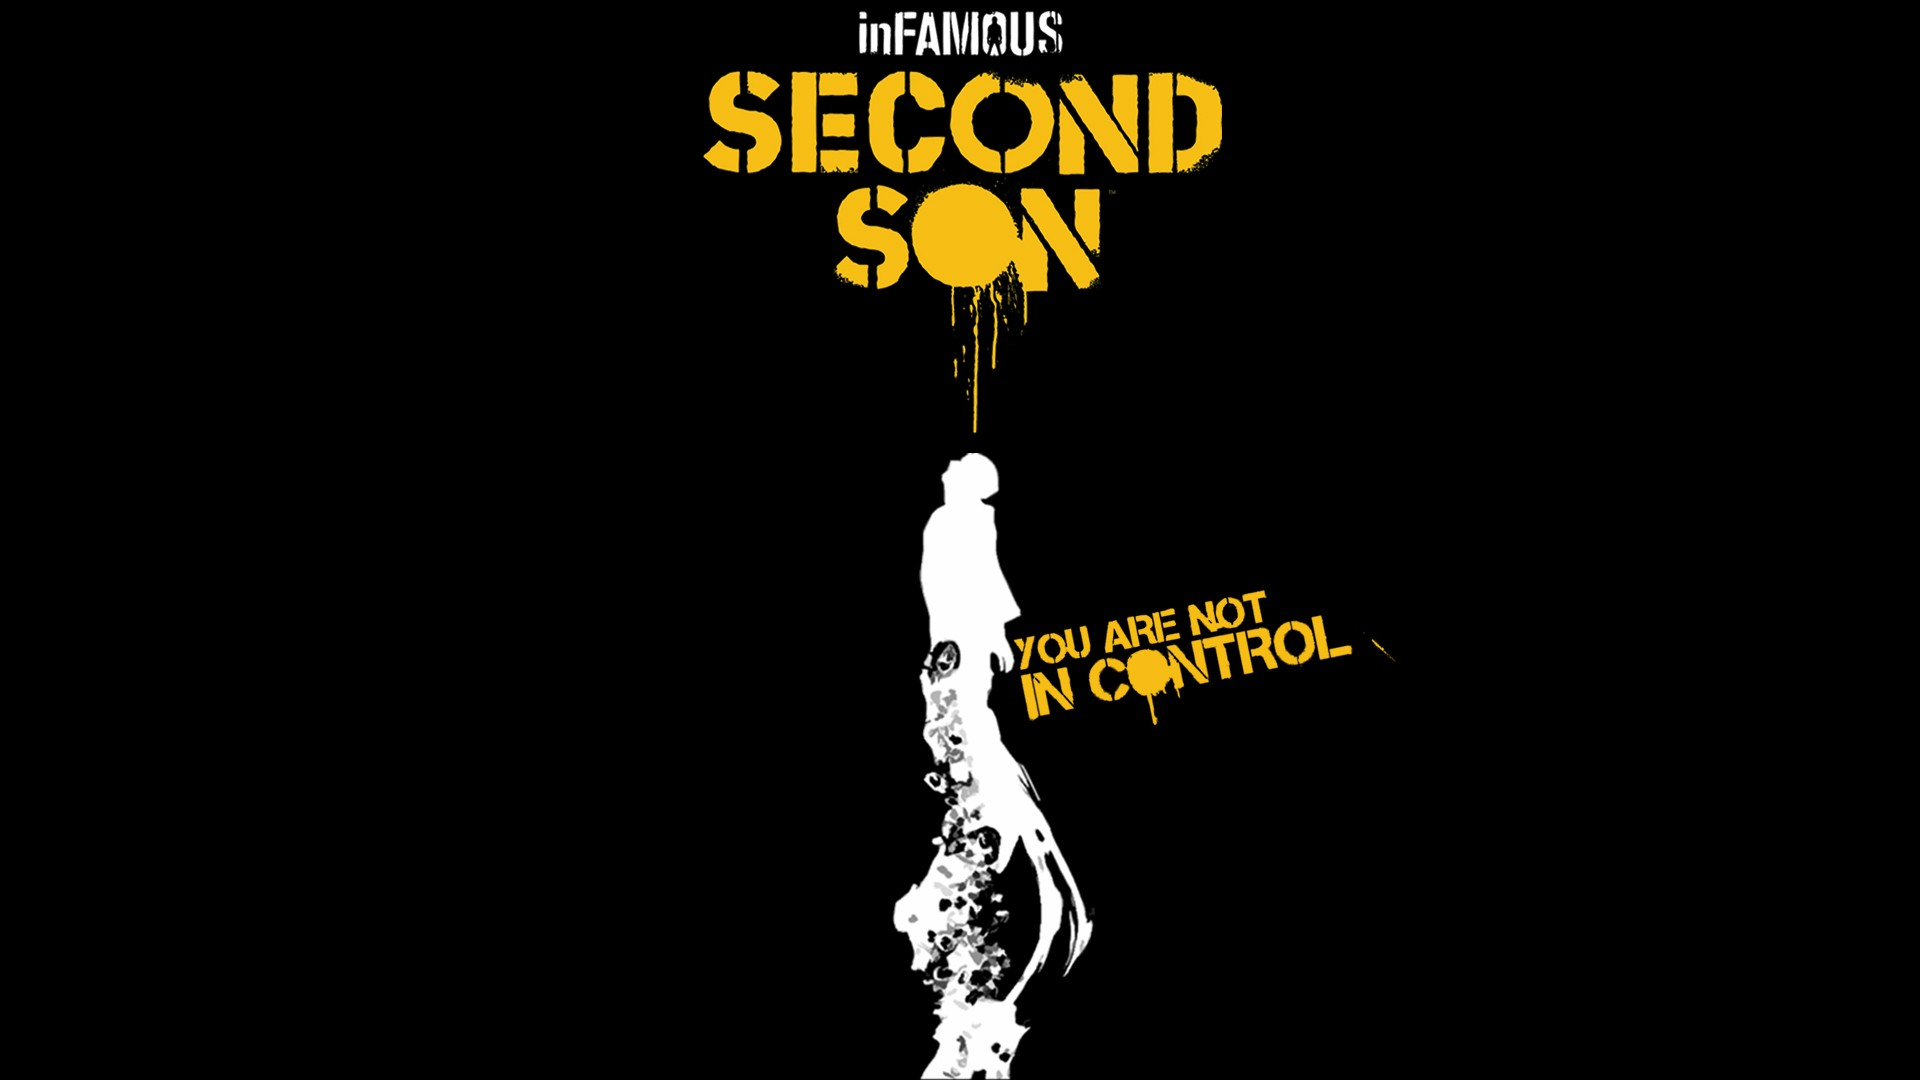 Infamous Second Son wallpaper 4